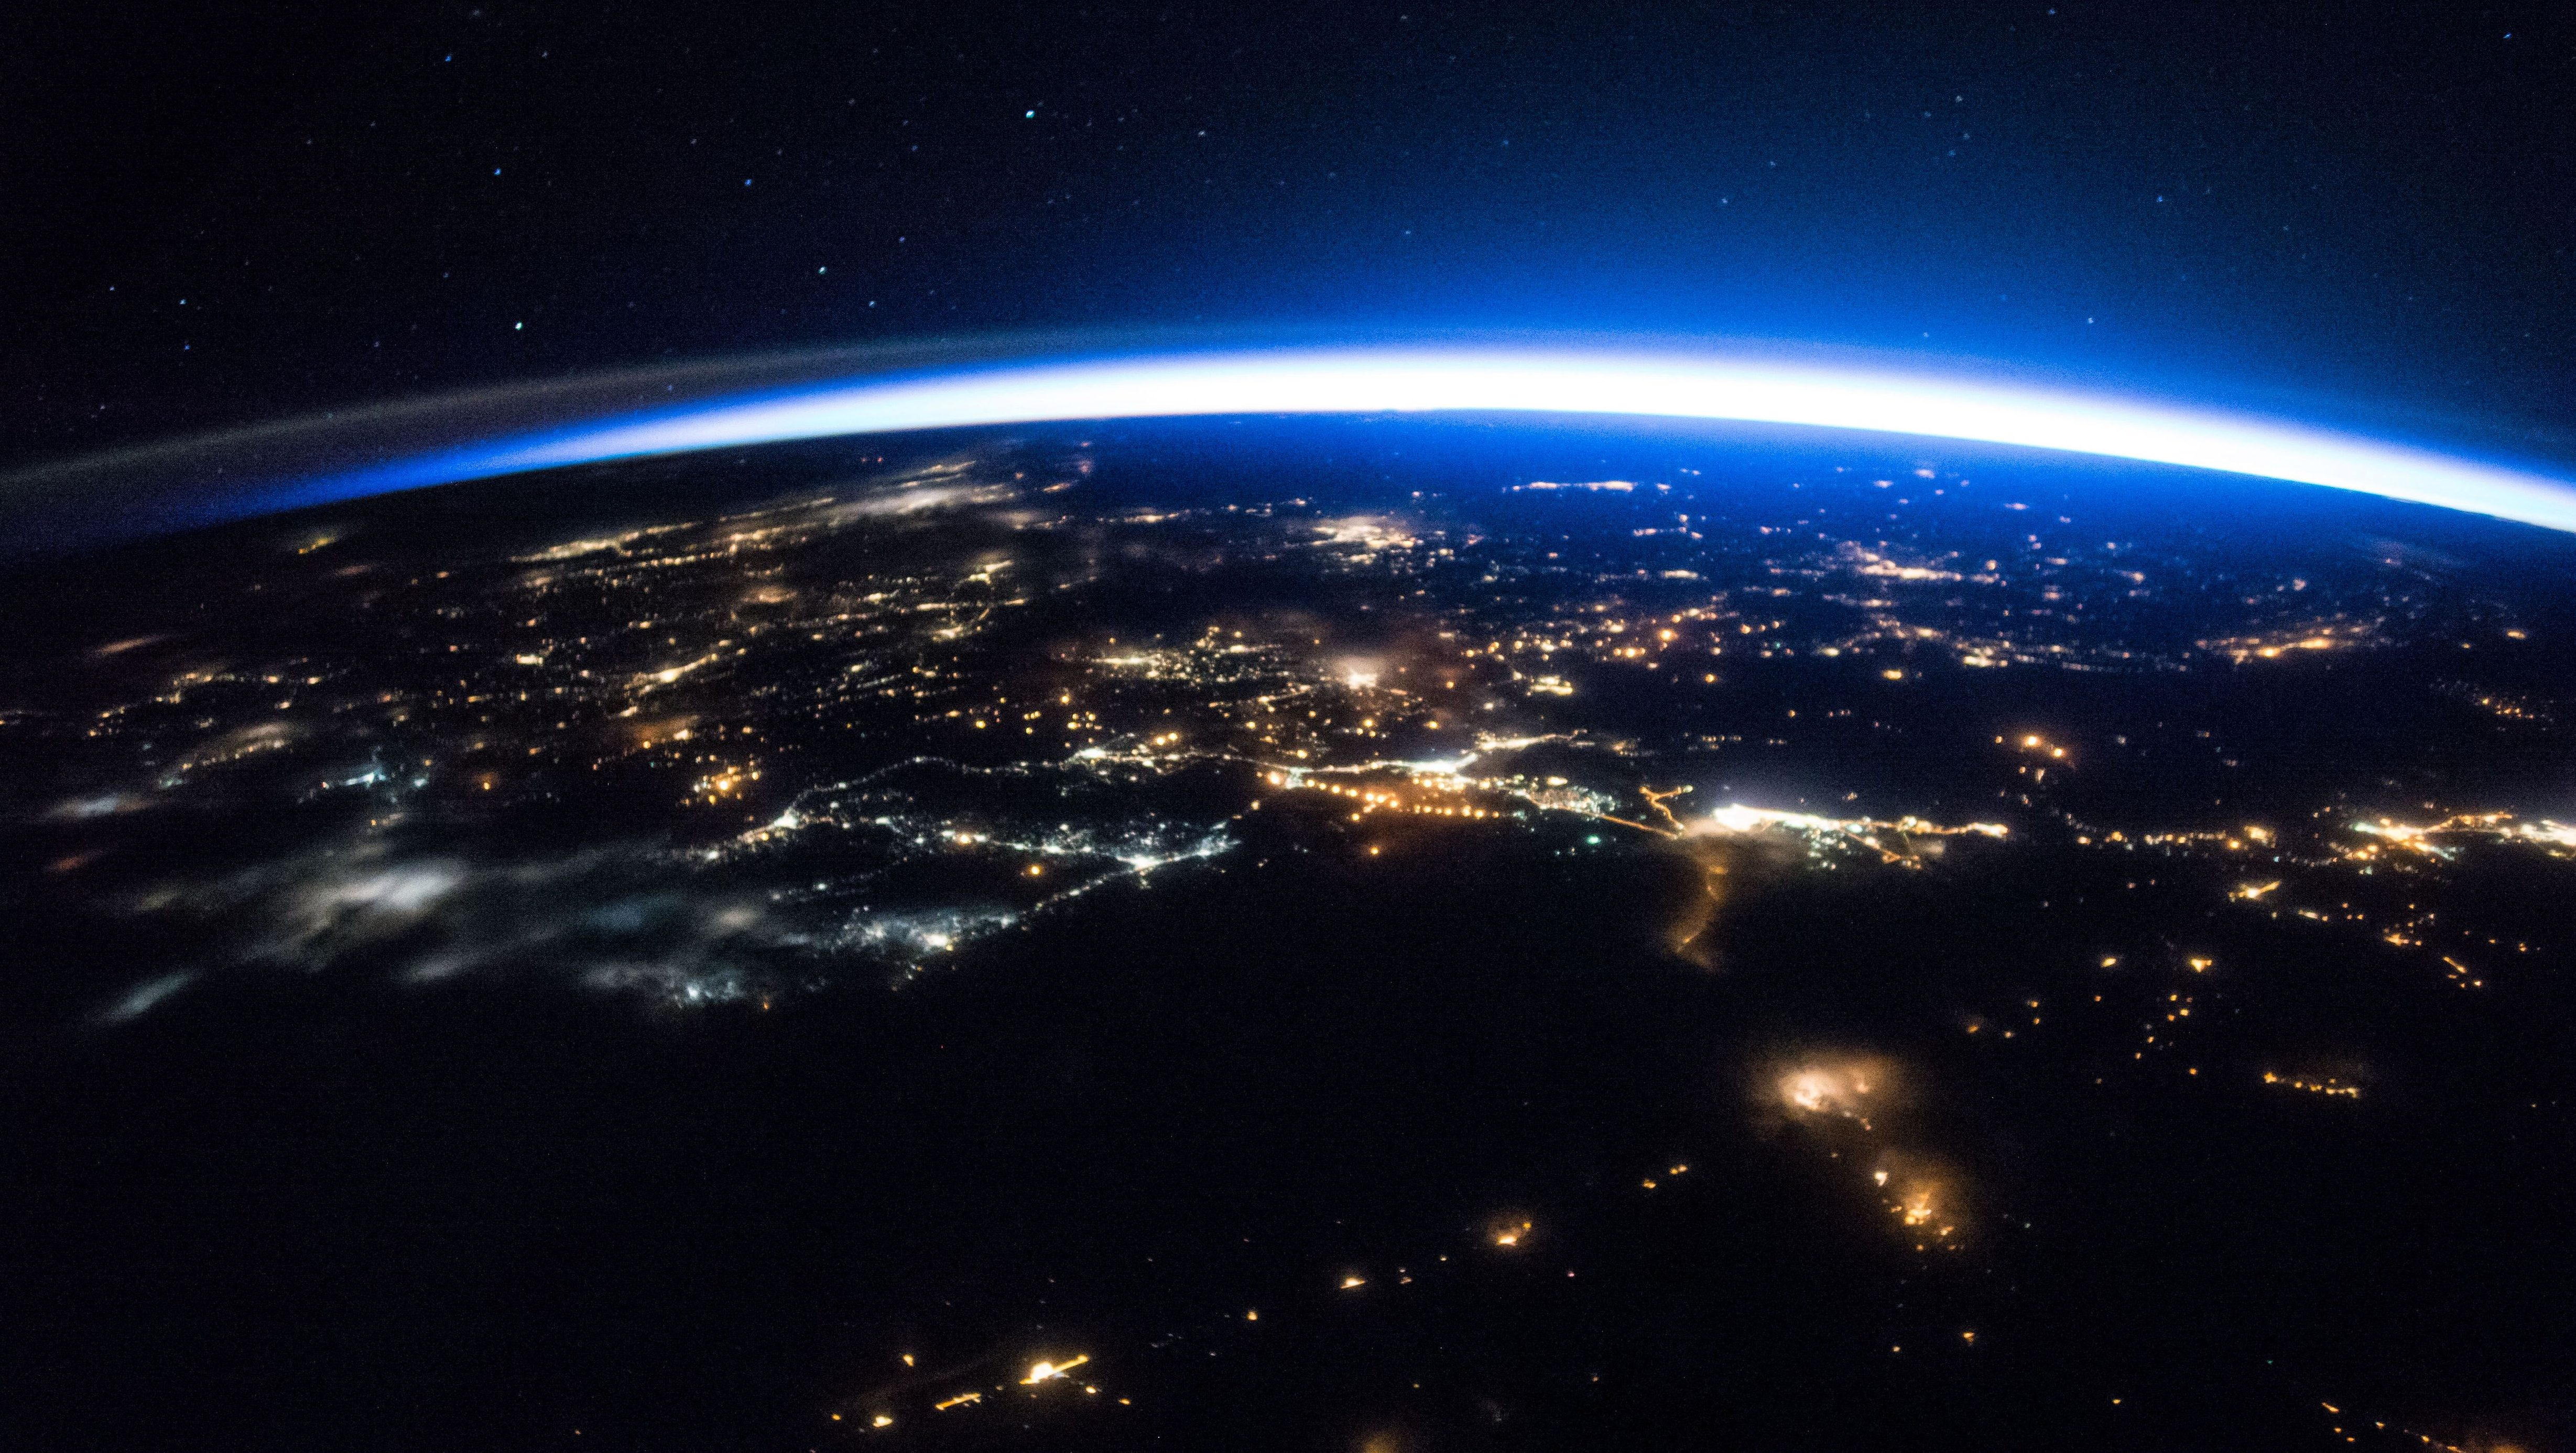 The International Space Station continues its orbit around the Earth as Expedition 50 astronauts captured this night image of sparkling cities and a sliver of daylight framing the northern hemisphere.